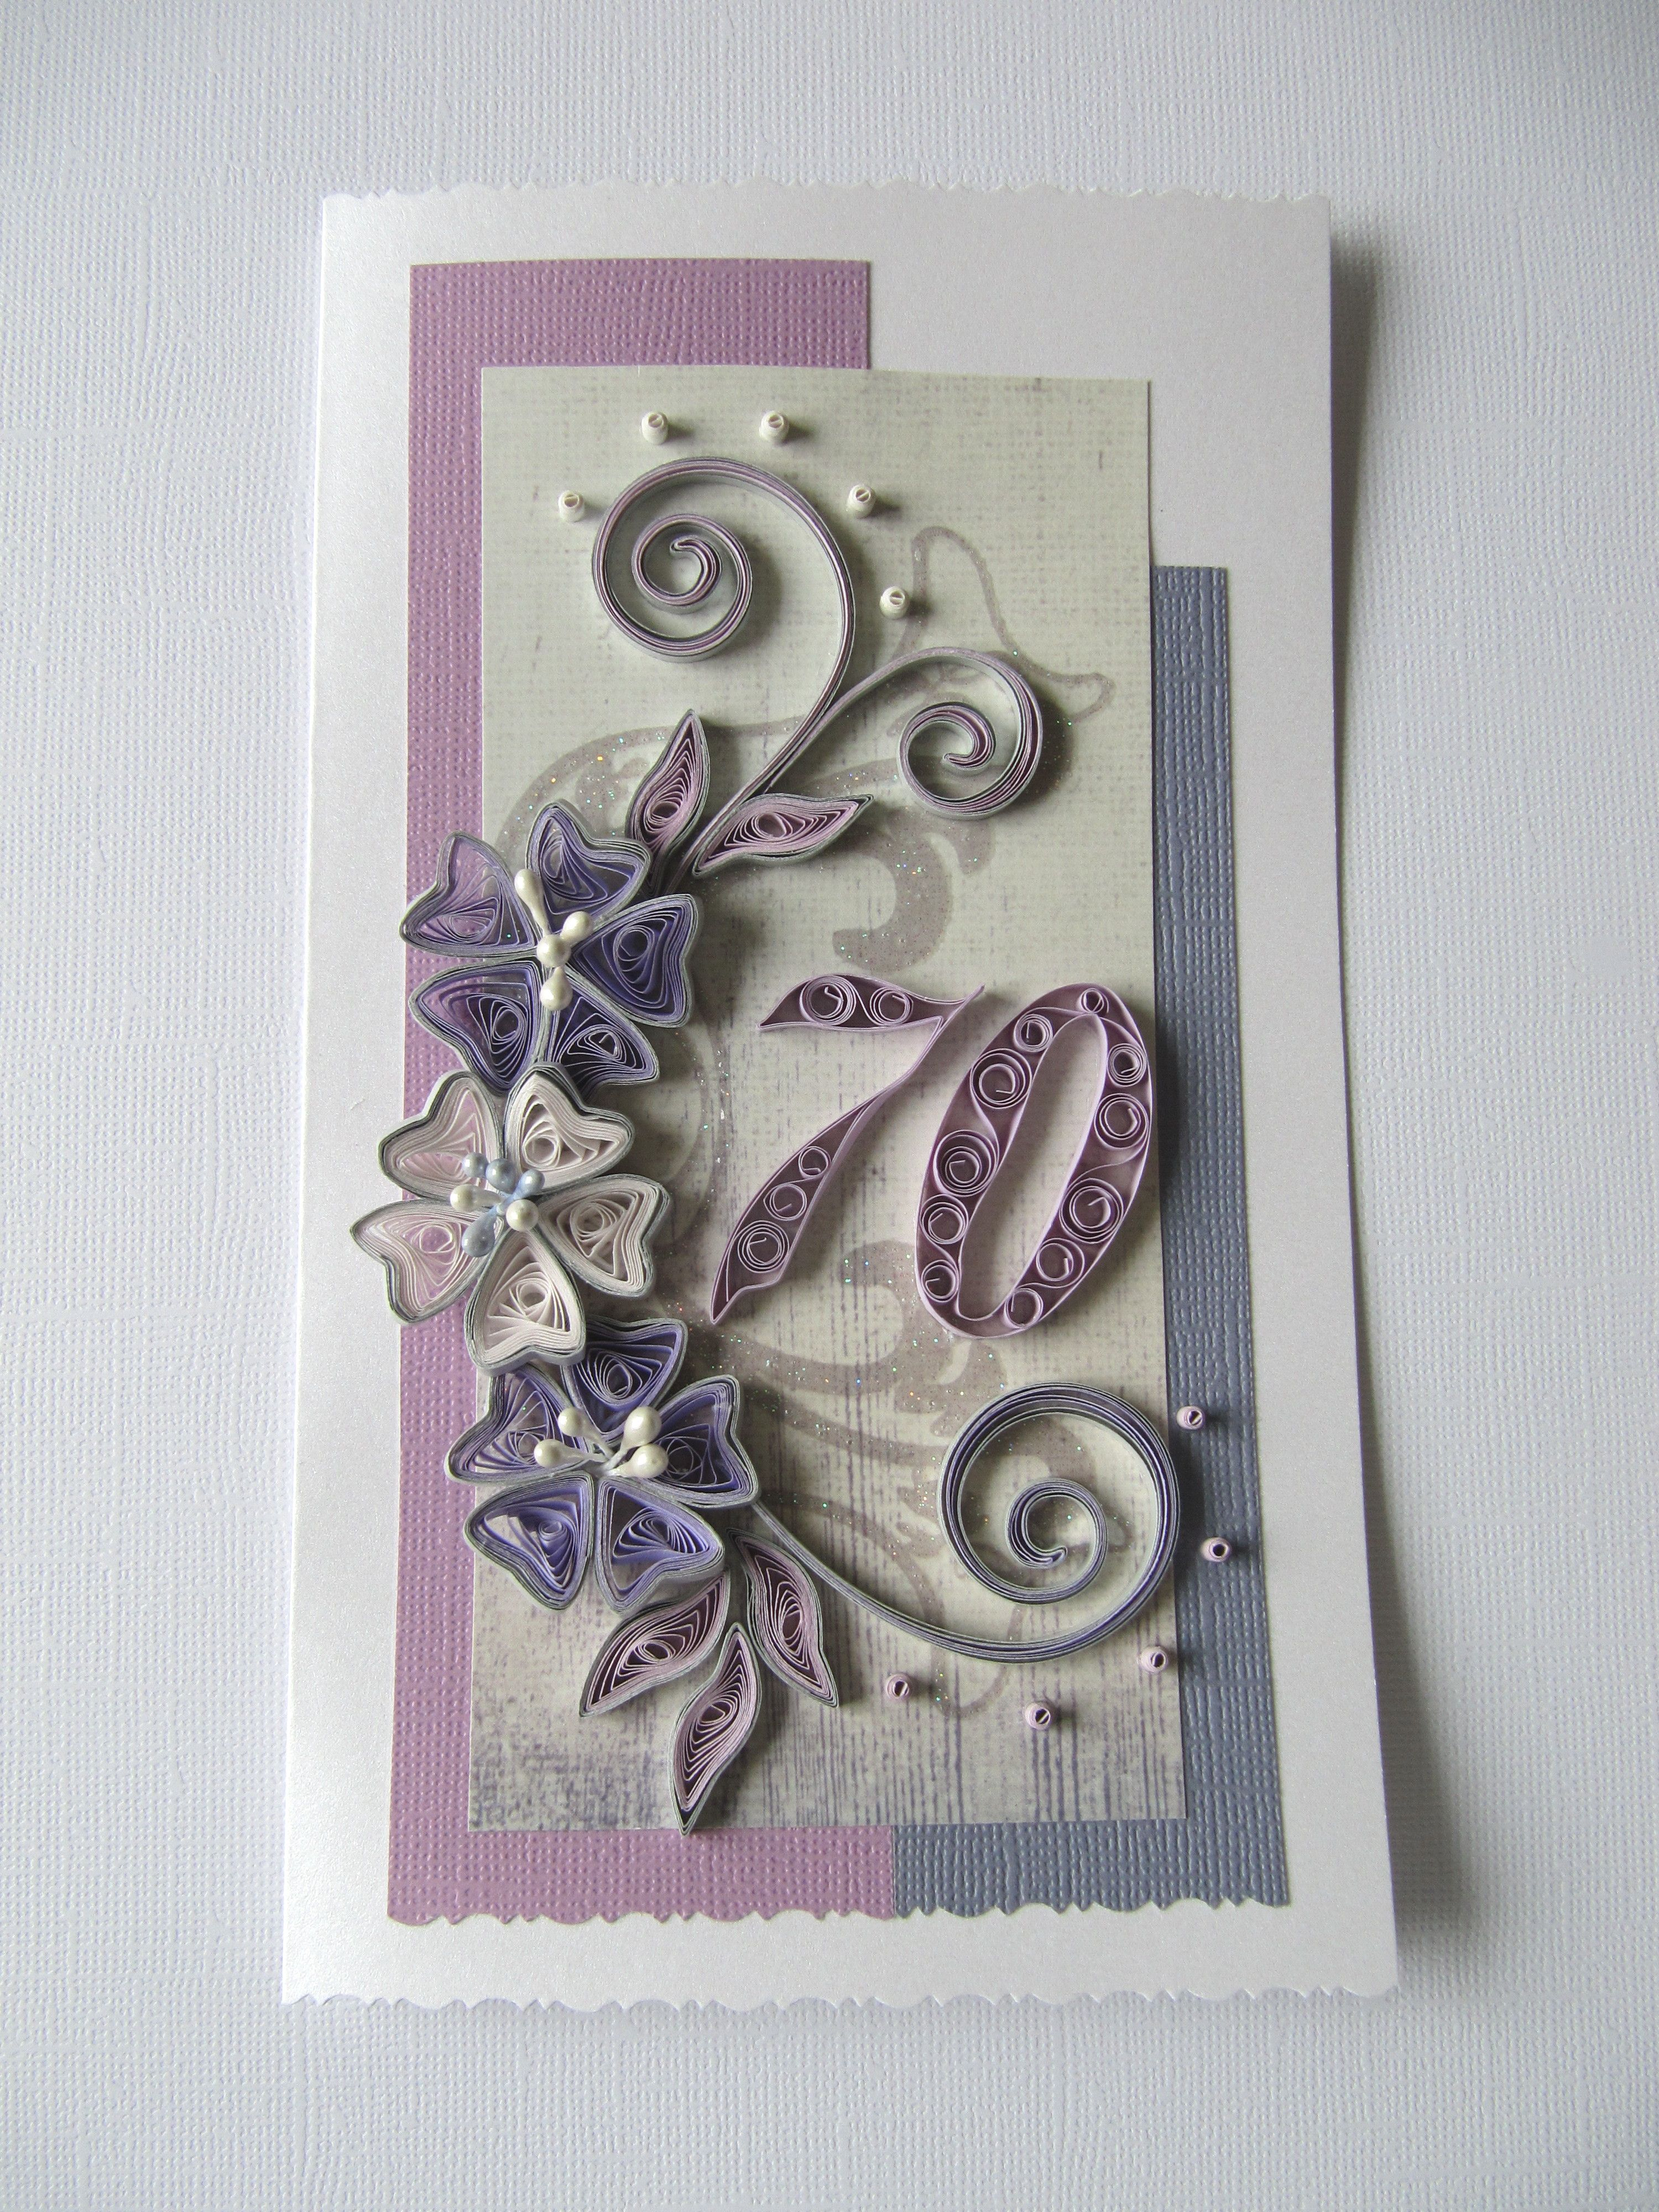 Pin By Radosveta Beleva On My Quilling World Pinterest Quilling